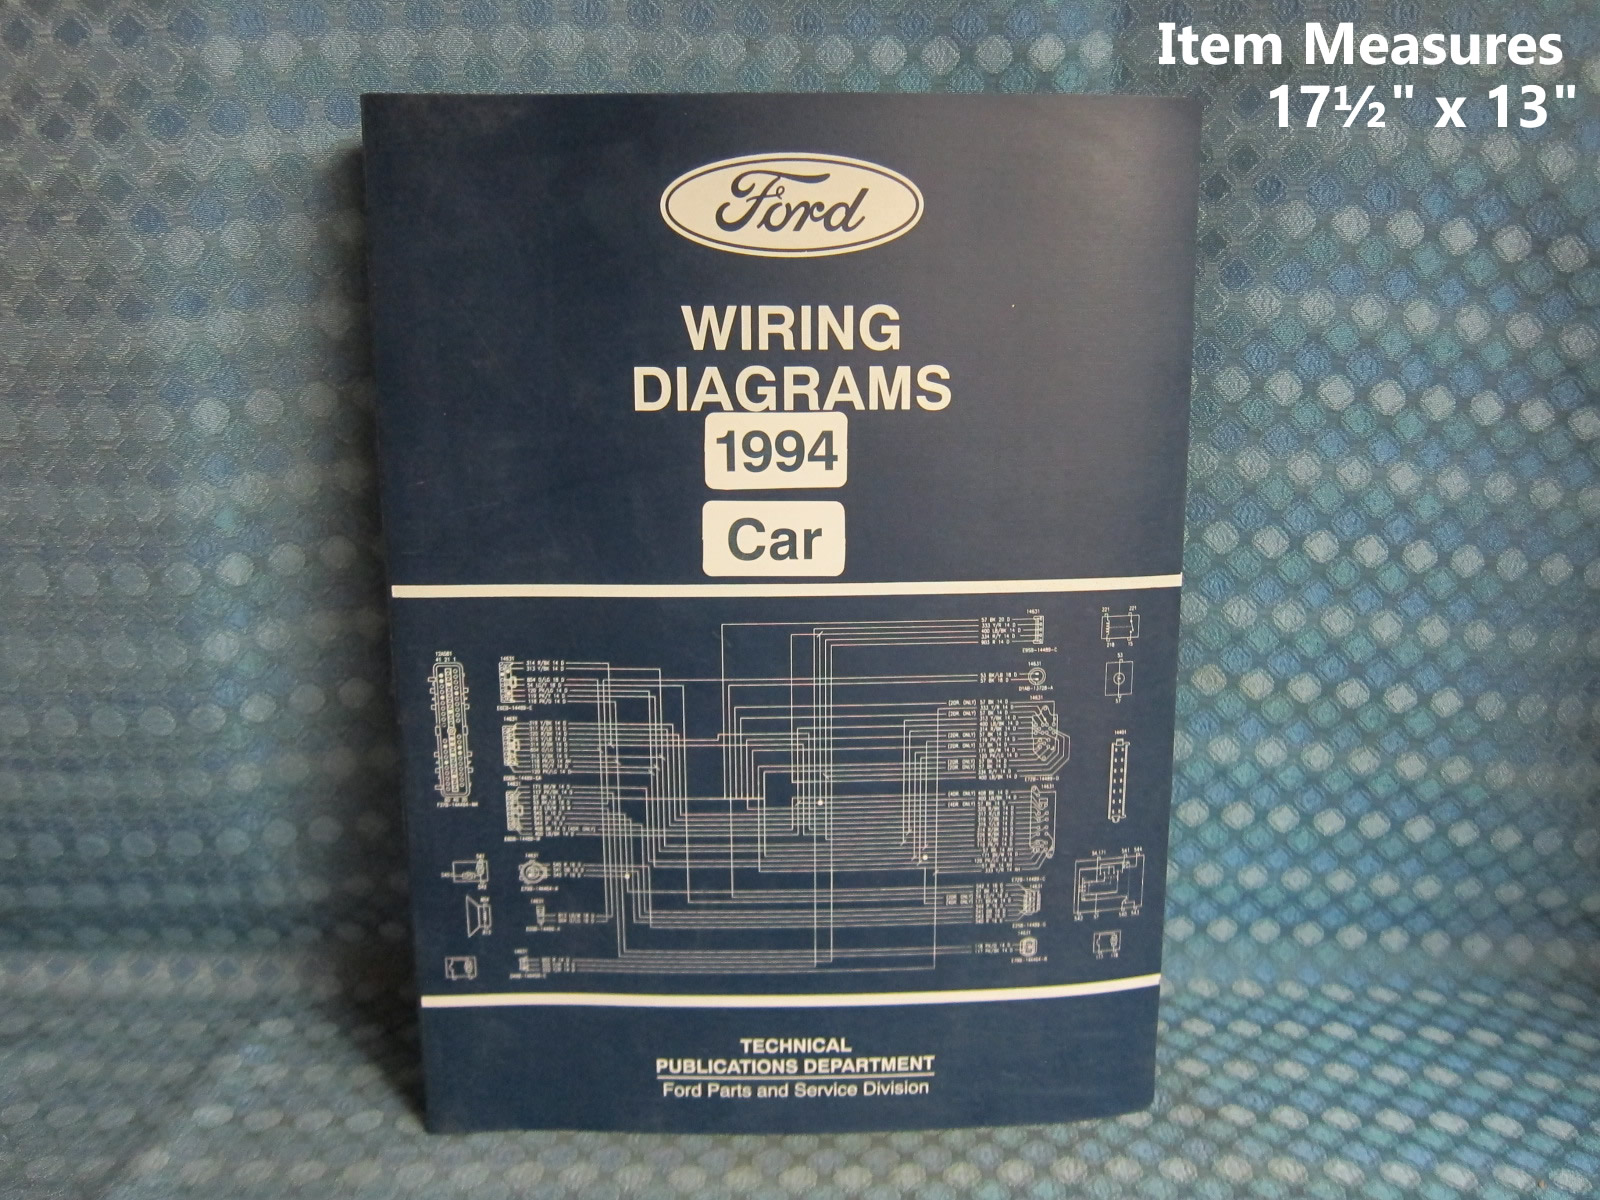 Cougar 2001 Parts Diagram Electrical Wiring Diagrams Heat 1994 Layout U2022